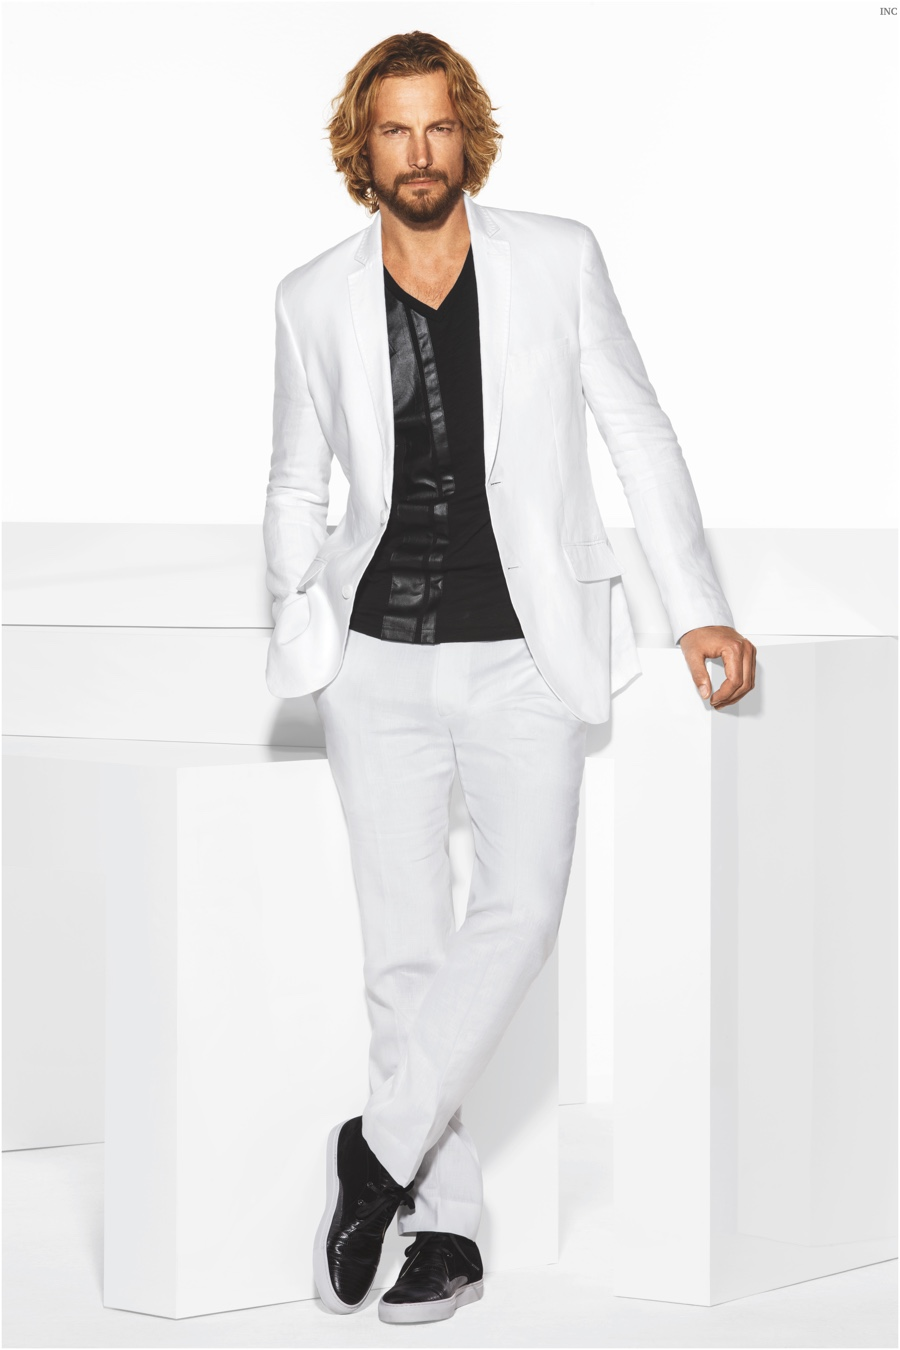 Gabriel Aubry Stars in Macy's INC Spring 2015 Campaign